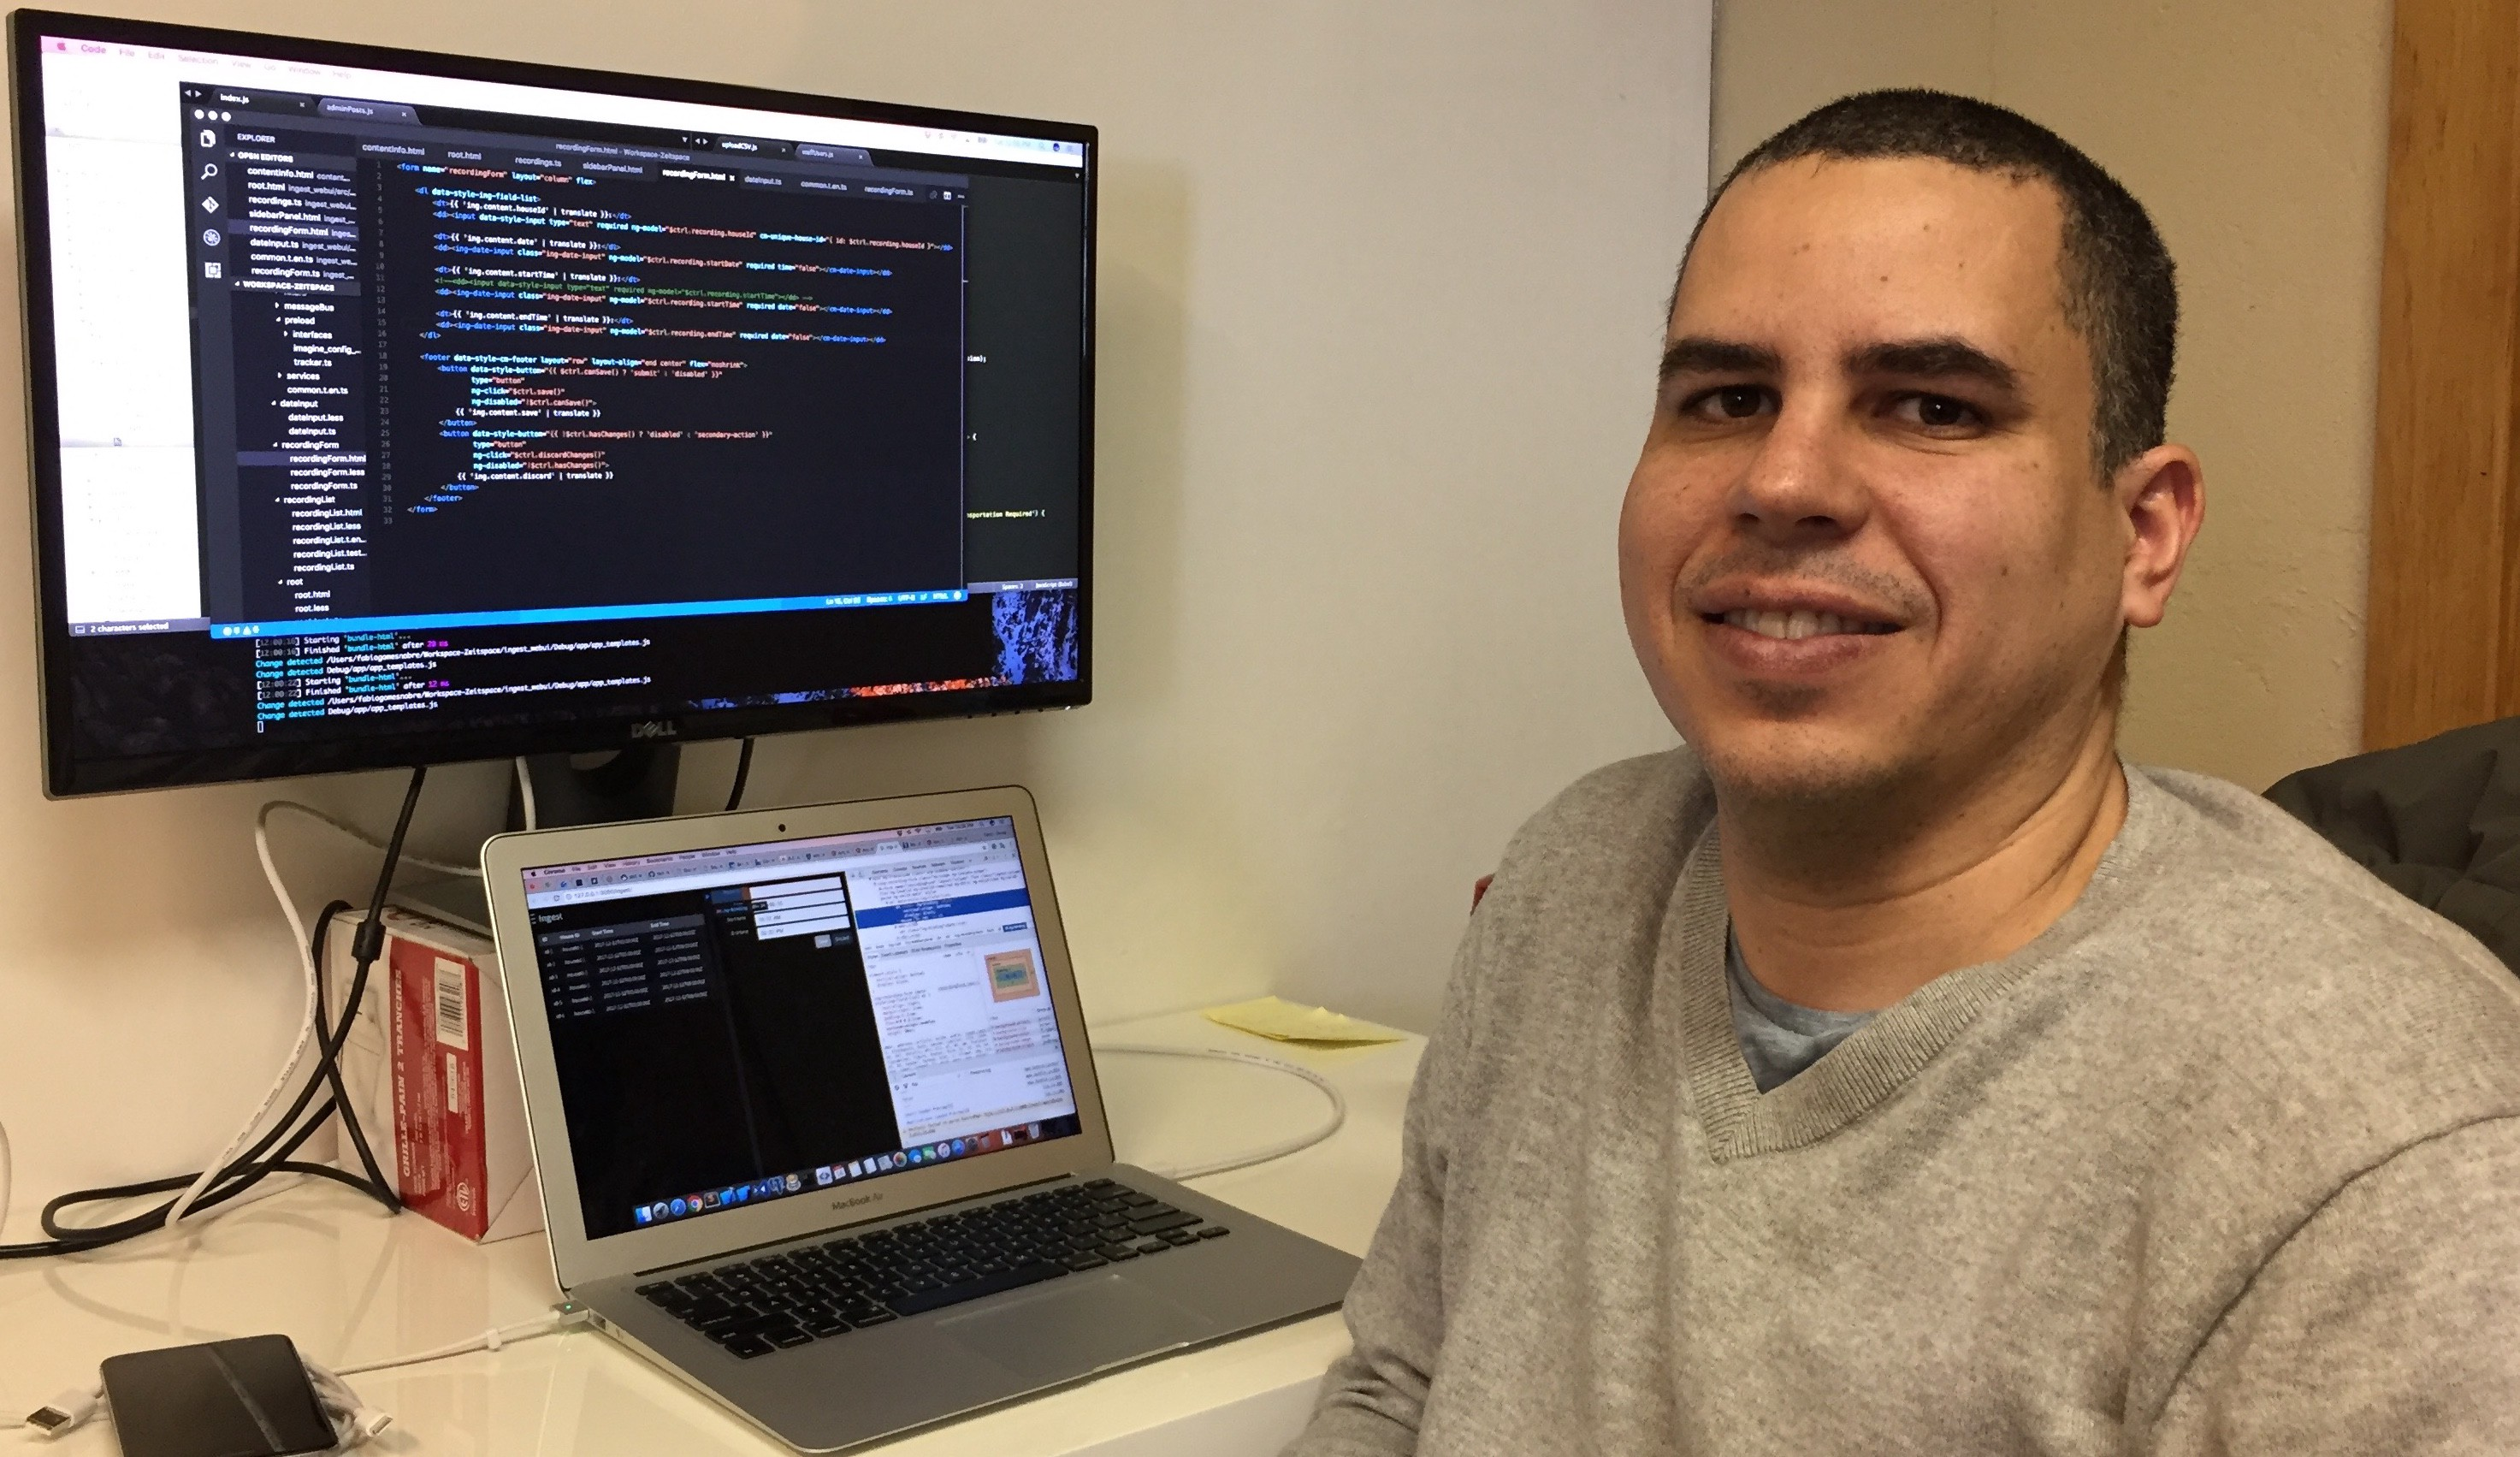 Fabio Nobre in-front of his computer with a code editor open